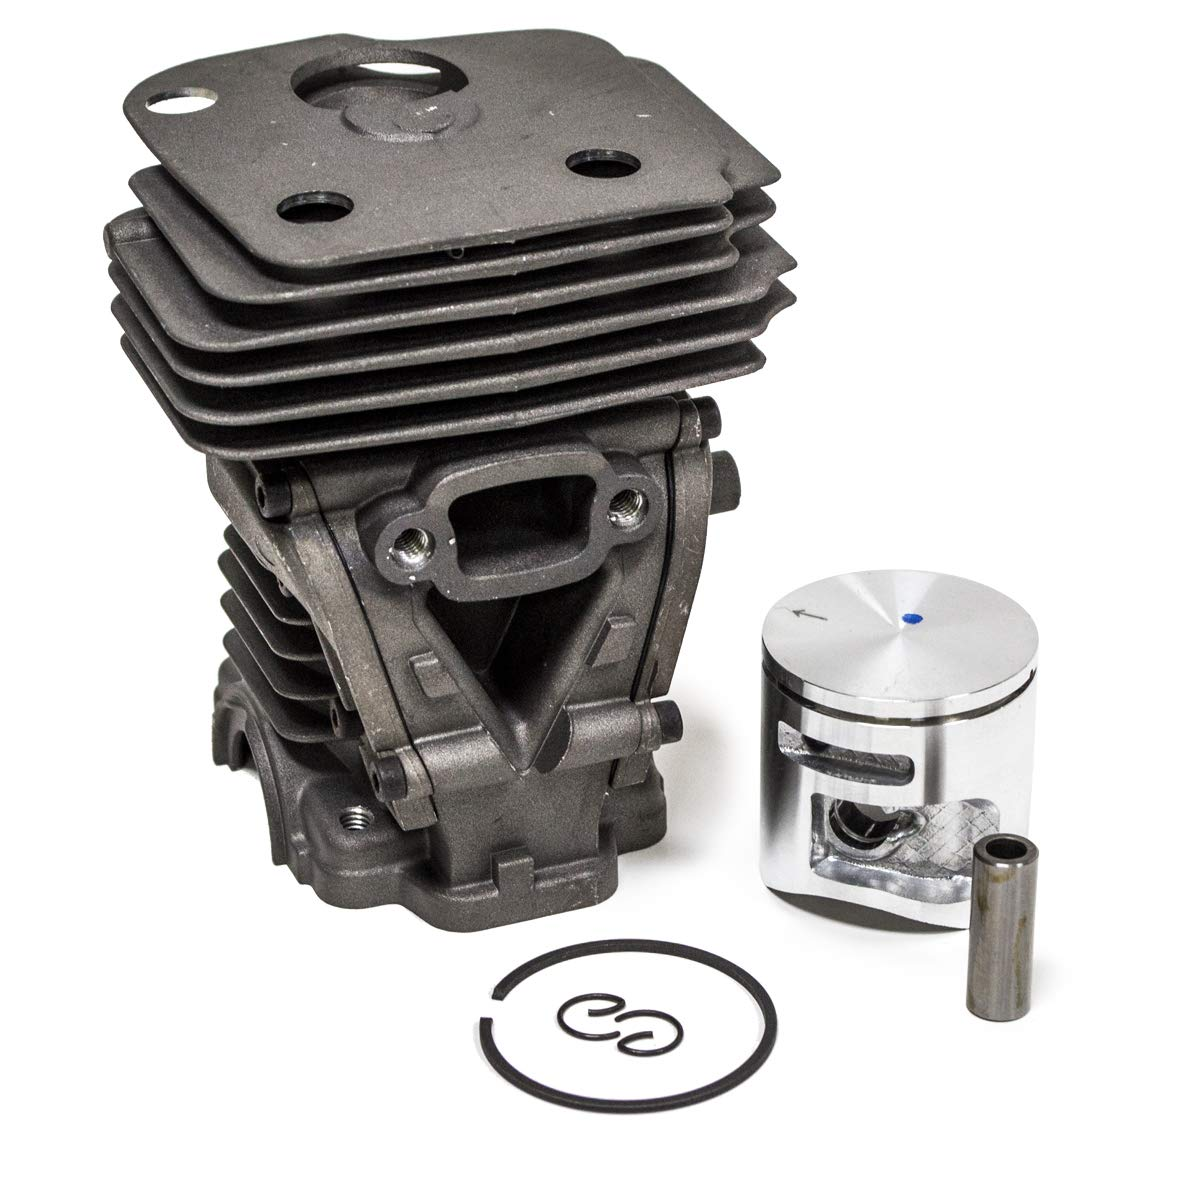 44MM Cylinder Piston Kit for Husqvarna 445E 450 450E 445 Chainsaw 544 11 98 02 by Replaces Husqvarna